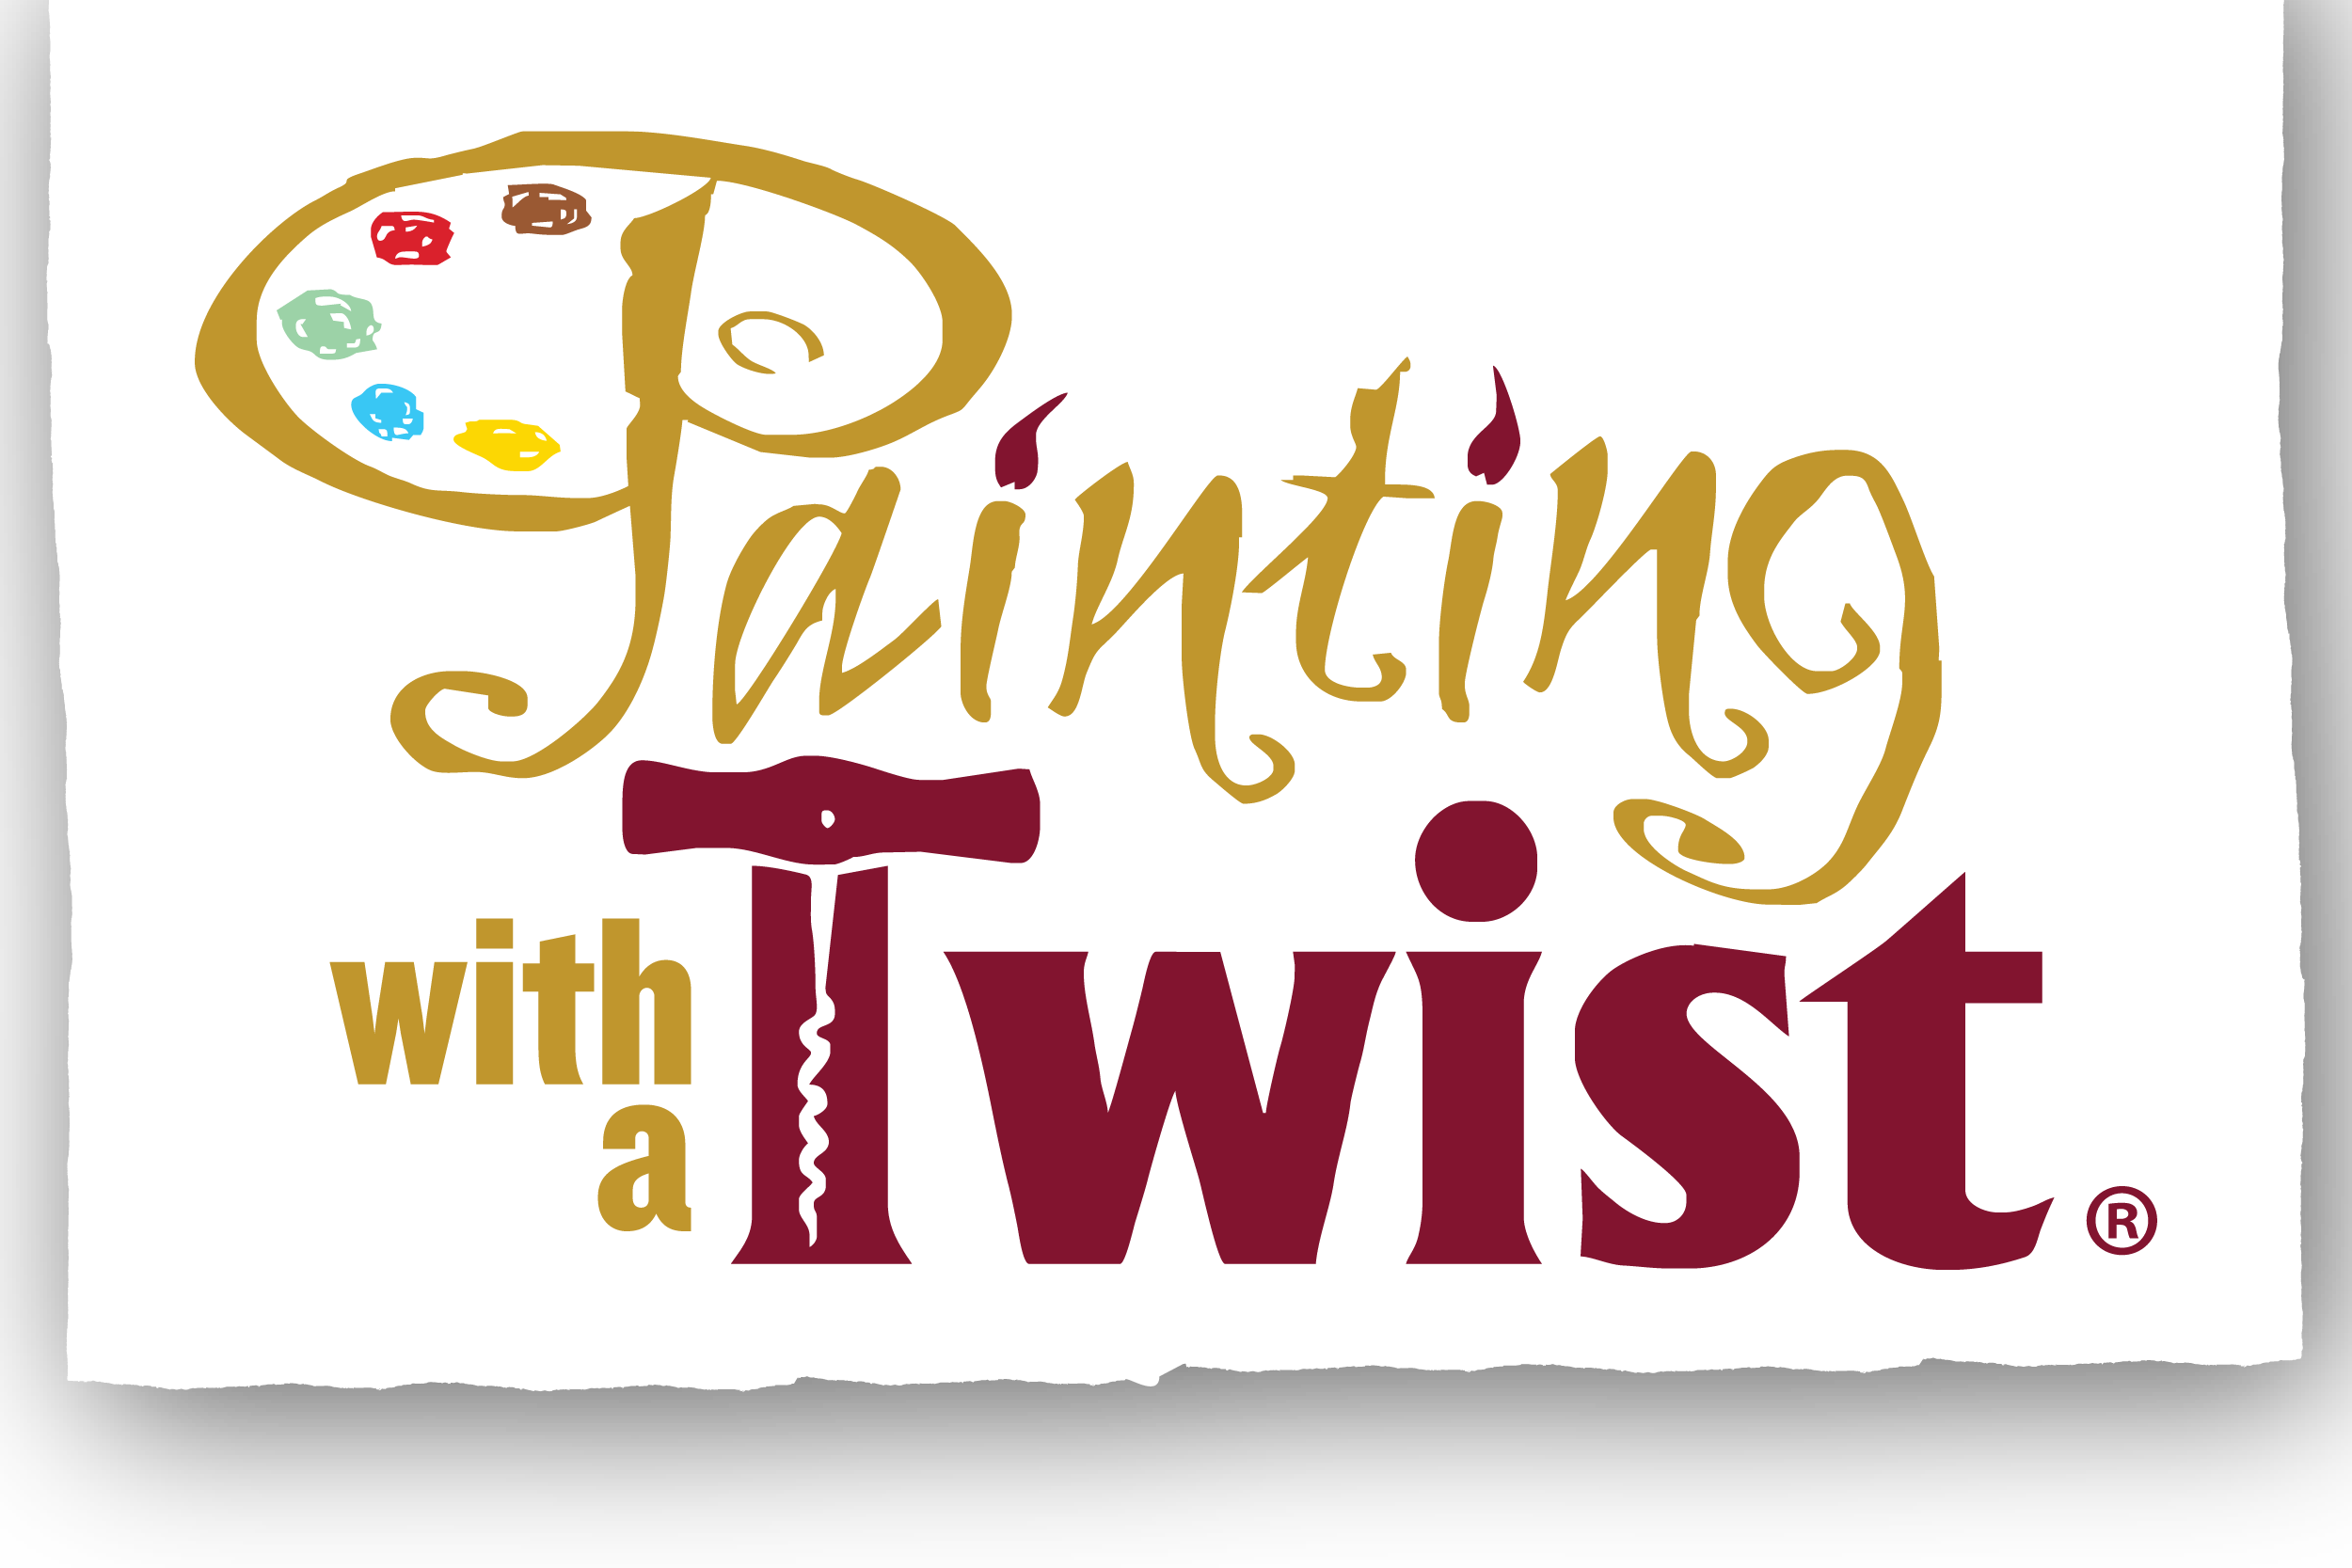 Painting with a twist coupons near me in metairie 8coupons for Painting with a twist chicago